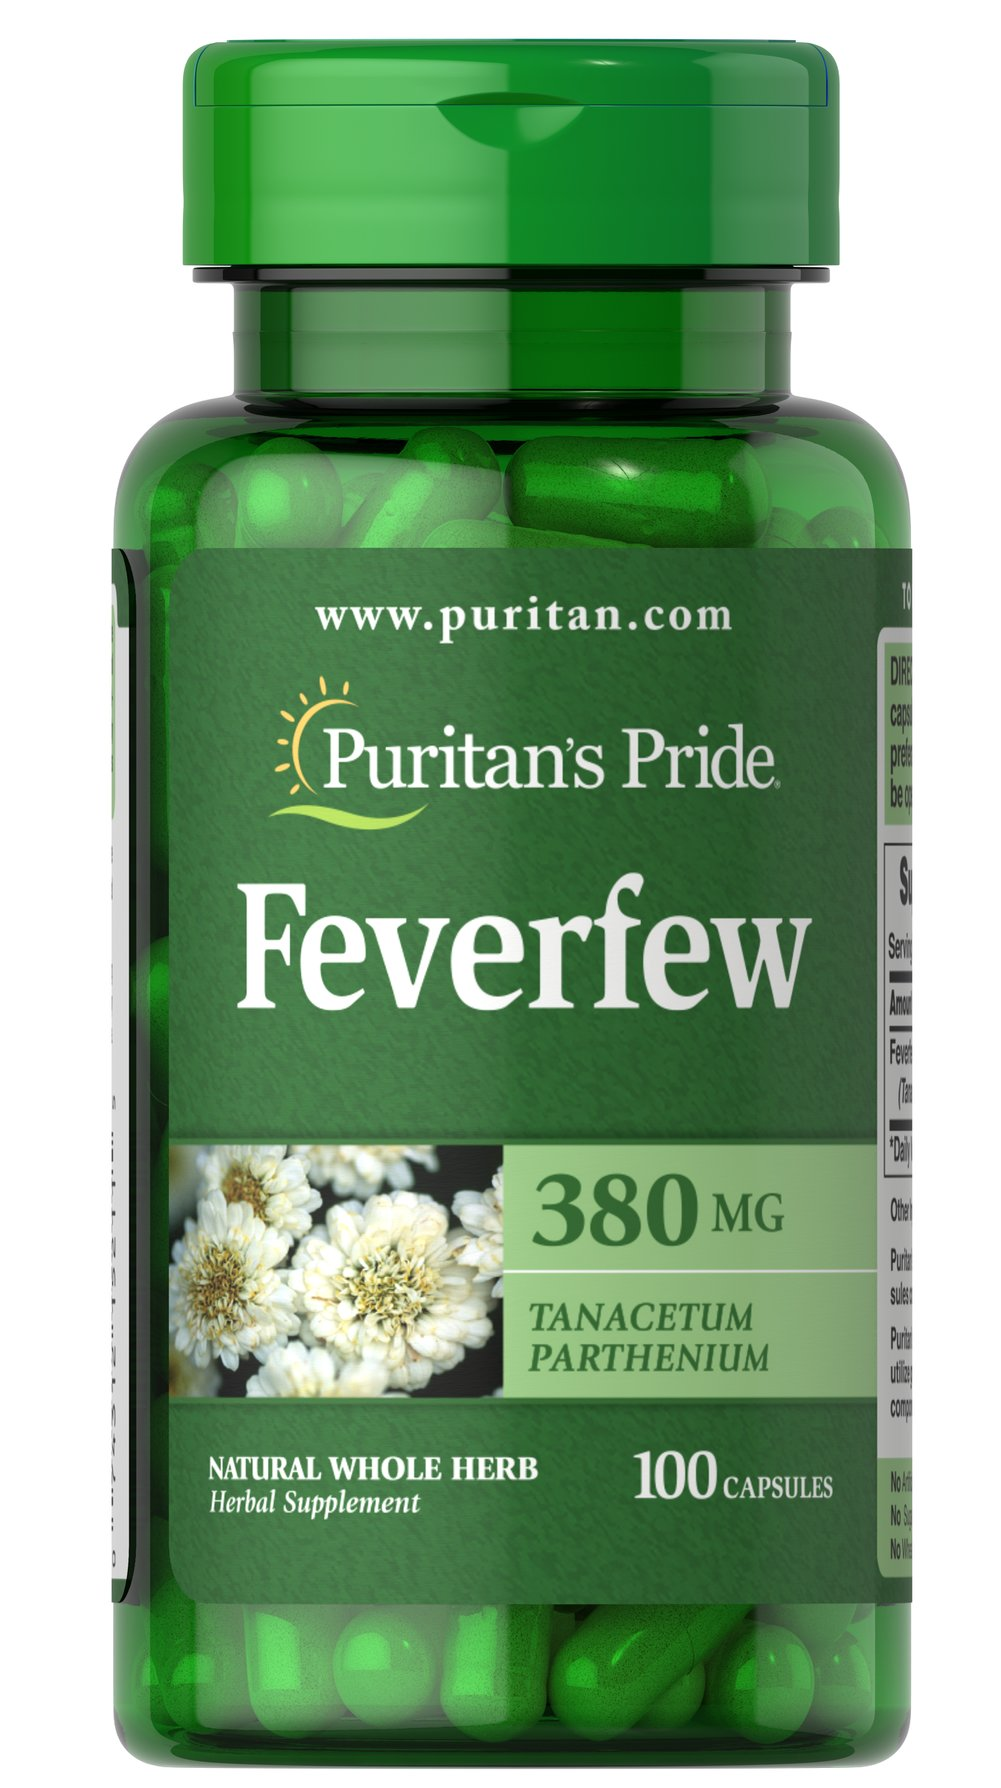 Feverfew 380 mg <p><br />Feverfew (Tanacetum parthenium) is traditionally<br />used by individuals with hectic lifestyles.**<br /><br />Puritan's Pride's preservative-free gelatin capsules<br />contain pure milled herb powder.<br /><br />Puritan's Pride's Natural Whole Herb products<br />utilize ground plant parts to provide the natural<br />components found in nature.</p> 100 Capsules 380 mg $9.29